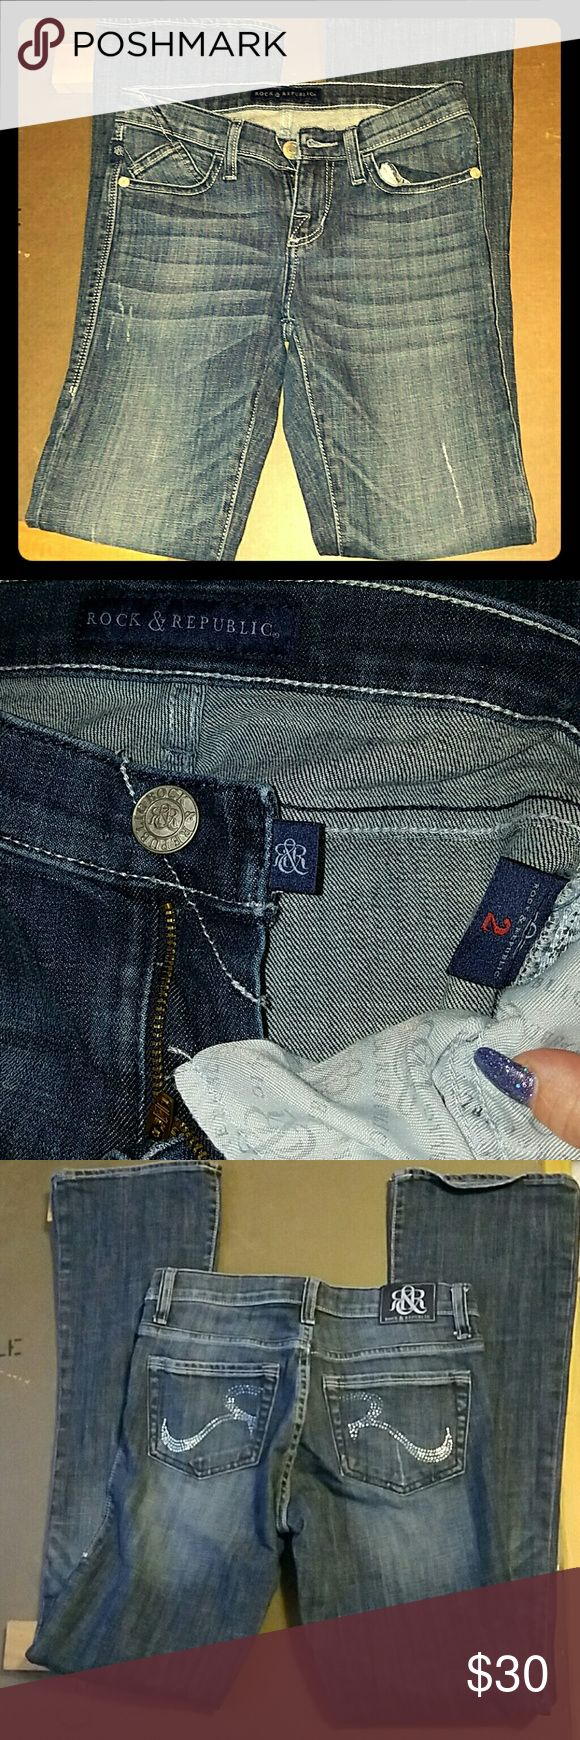 Rock and Republic jeans sz 2 EUC EUC that I never wore as they are too long. I'm petite and these are not. They are awesome with Rhinestones on the back and a distress look on the front. No flaws Rock & Republic Jeans Boot Cut